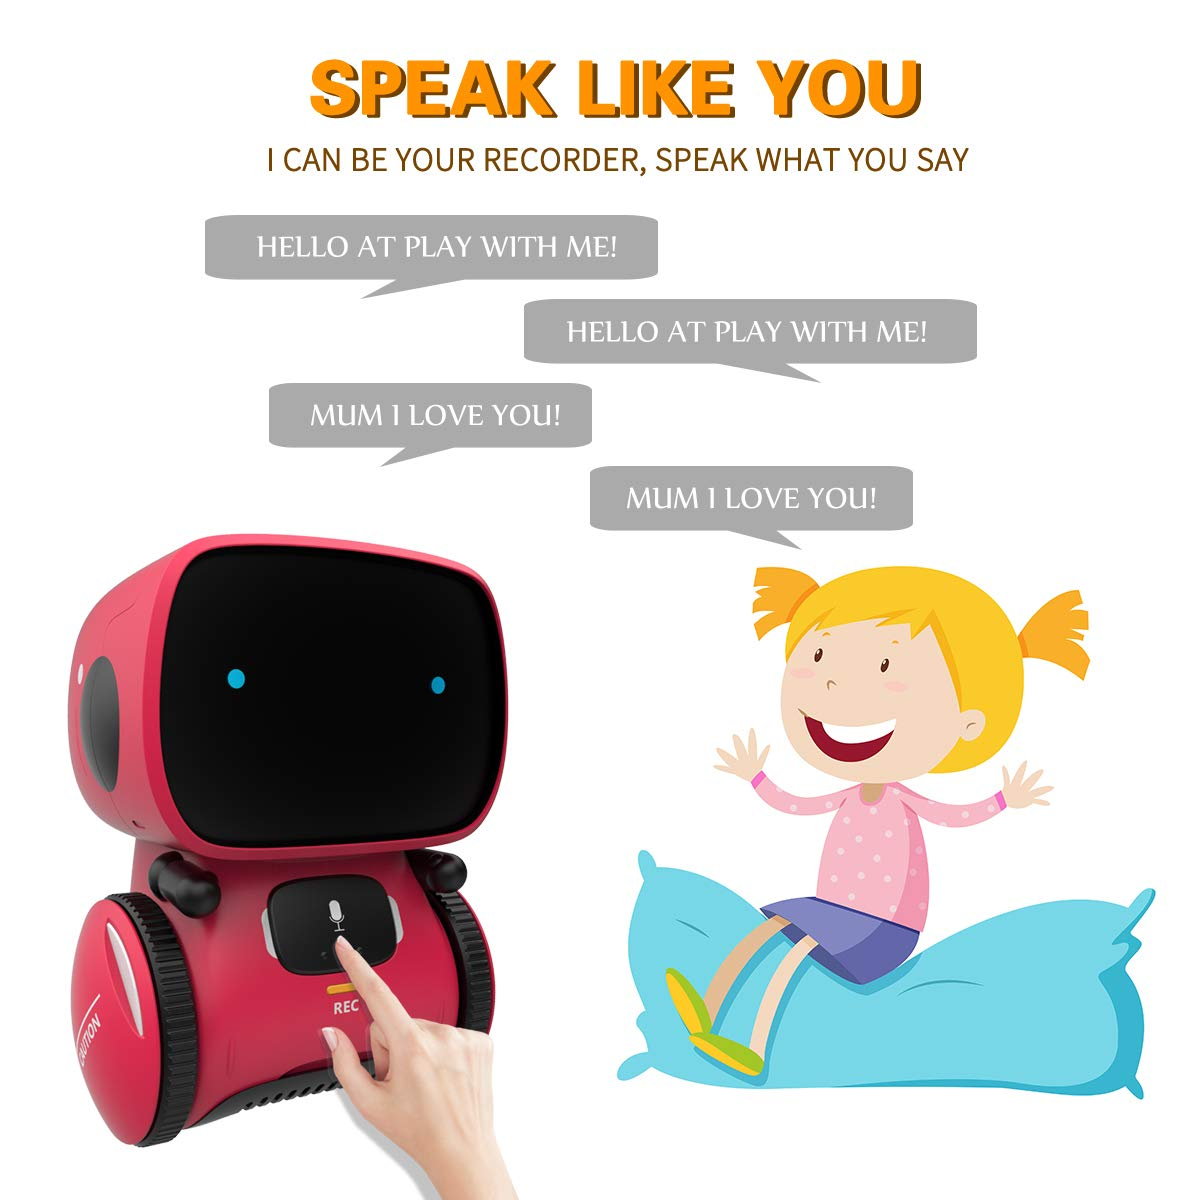 98K Kids Robot Toy, Smart Talking Robots, Gift for Boys and Girls Age 3+, Intelligent Partner and Teacher, with Voice Controlled and Touch Sensor, Singing, Dancing, Repeating by 98K (Image #4)